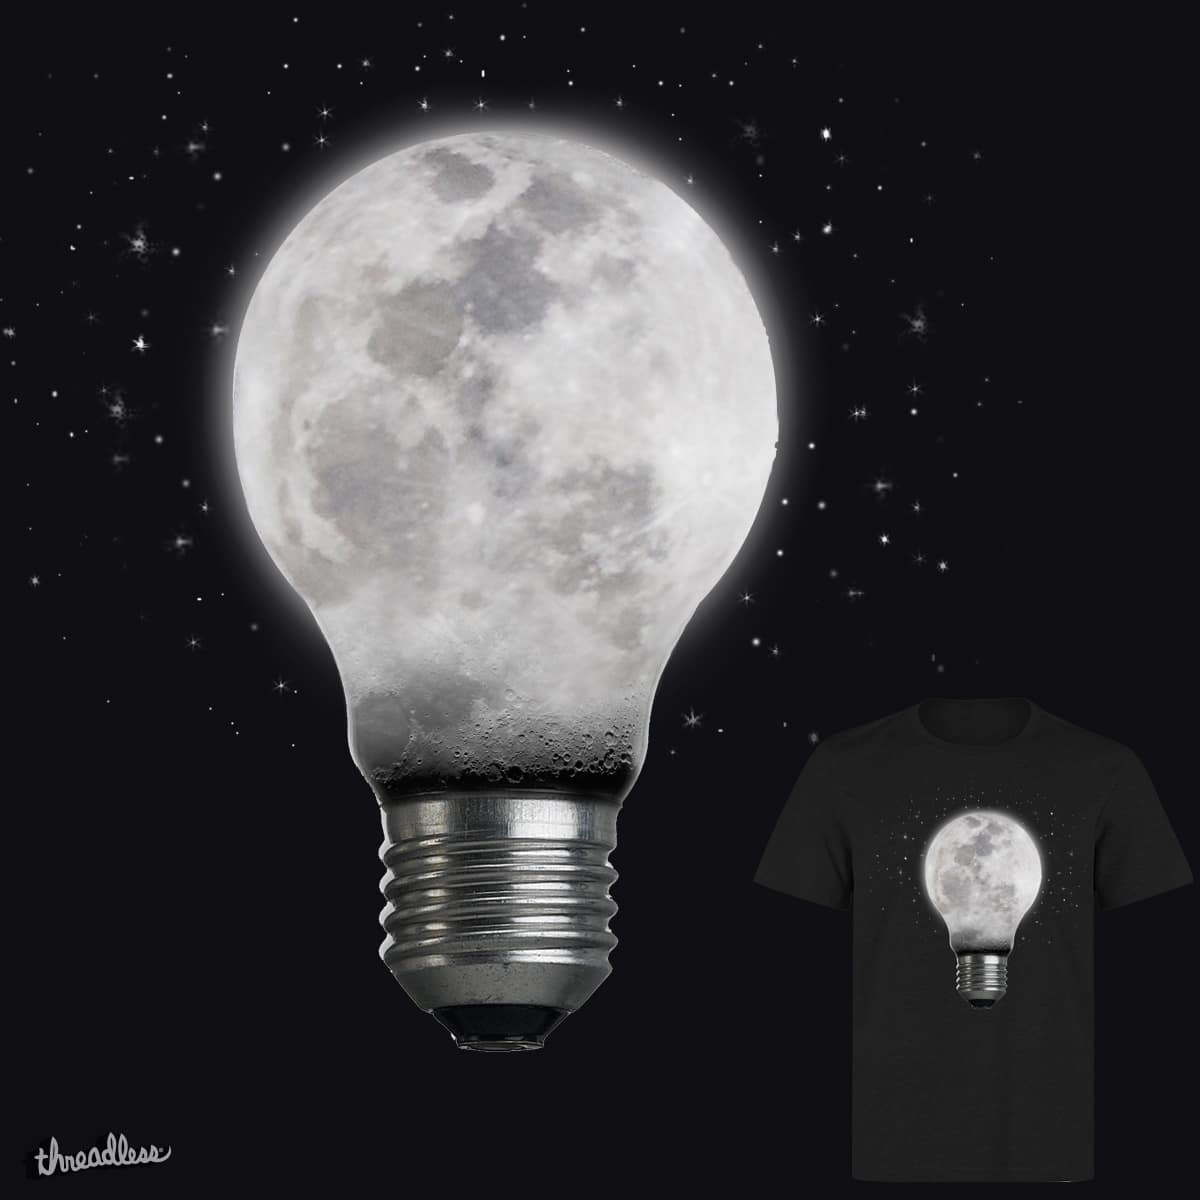 Moon Bulb by Loremnzo and RiccardoXIII on Threadless